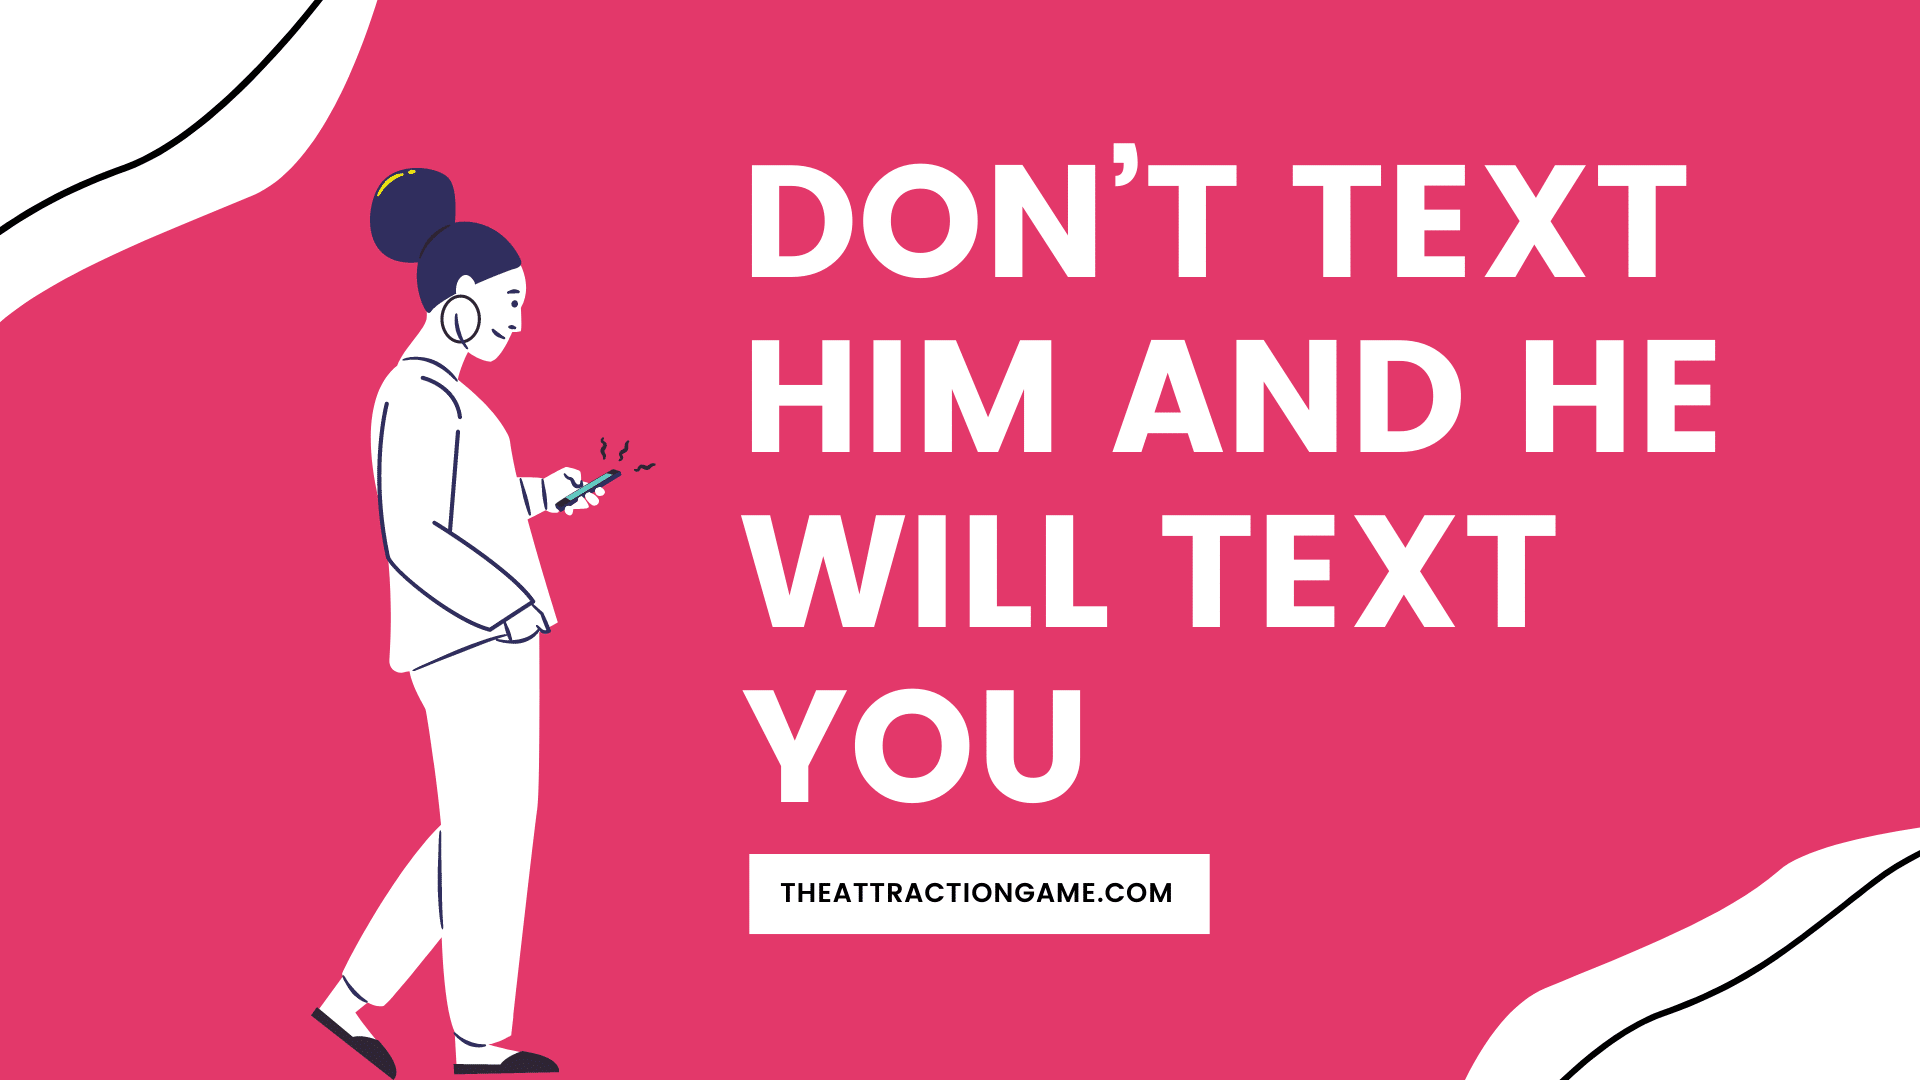 don't text him, why you should not text him, reasons why he will text you if you don't text him, don't text him and he will text you